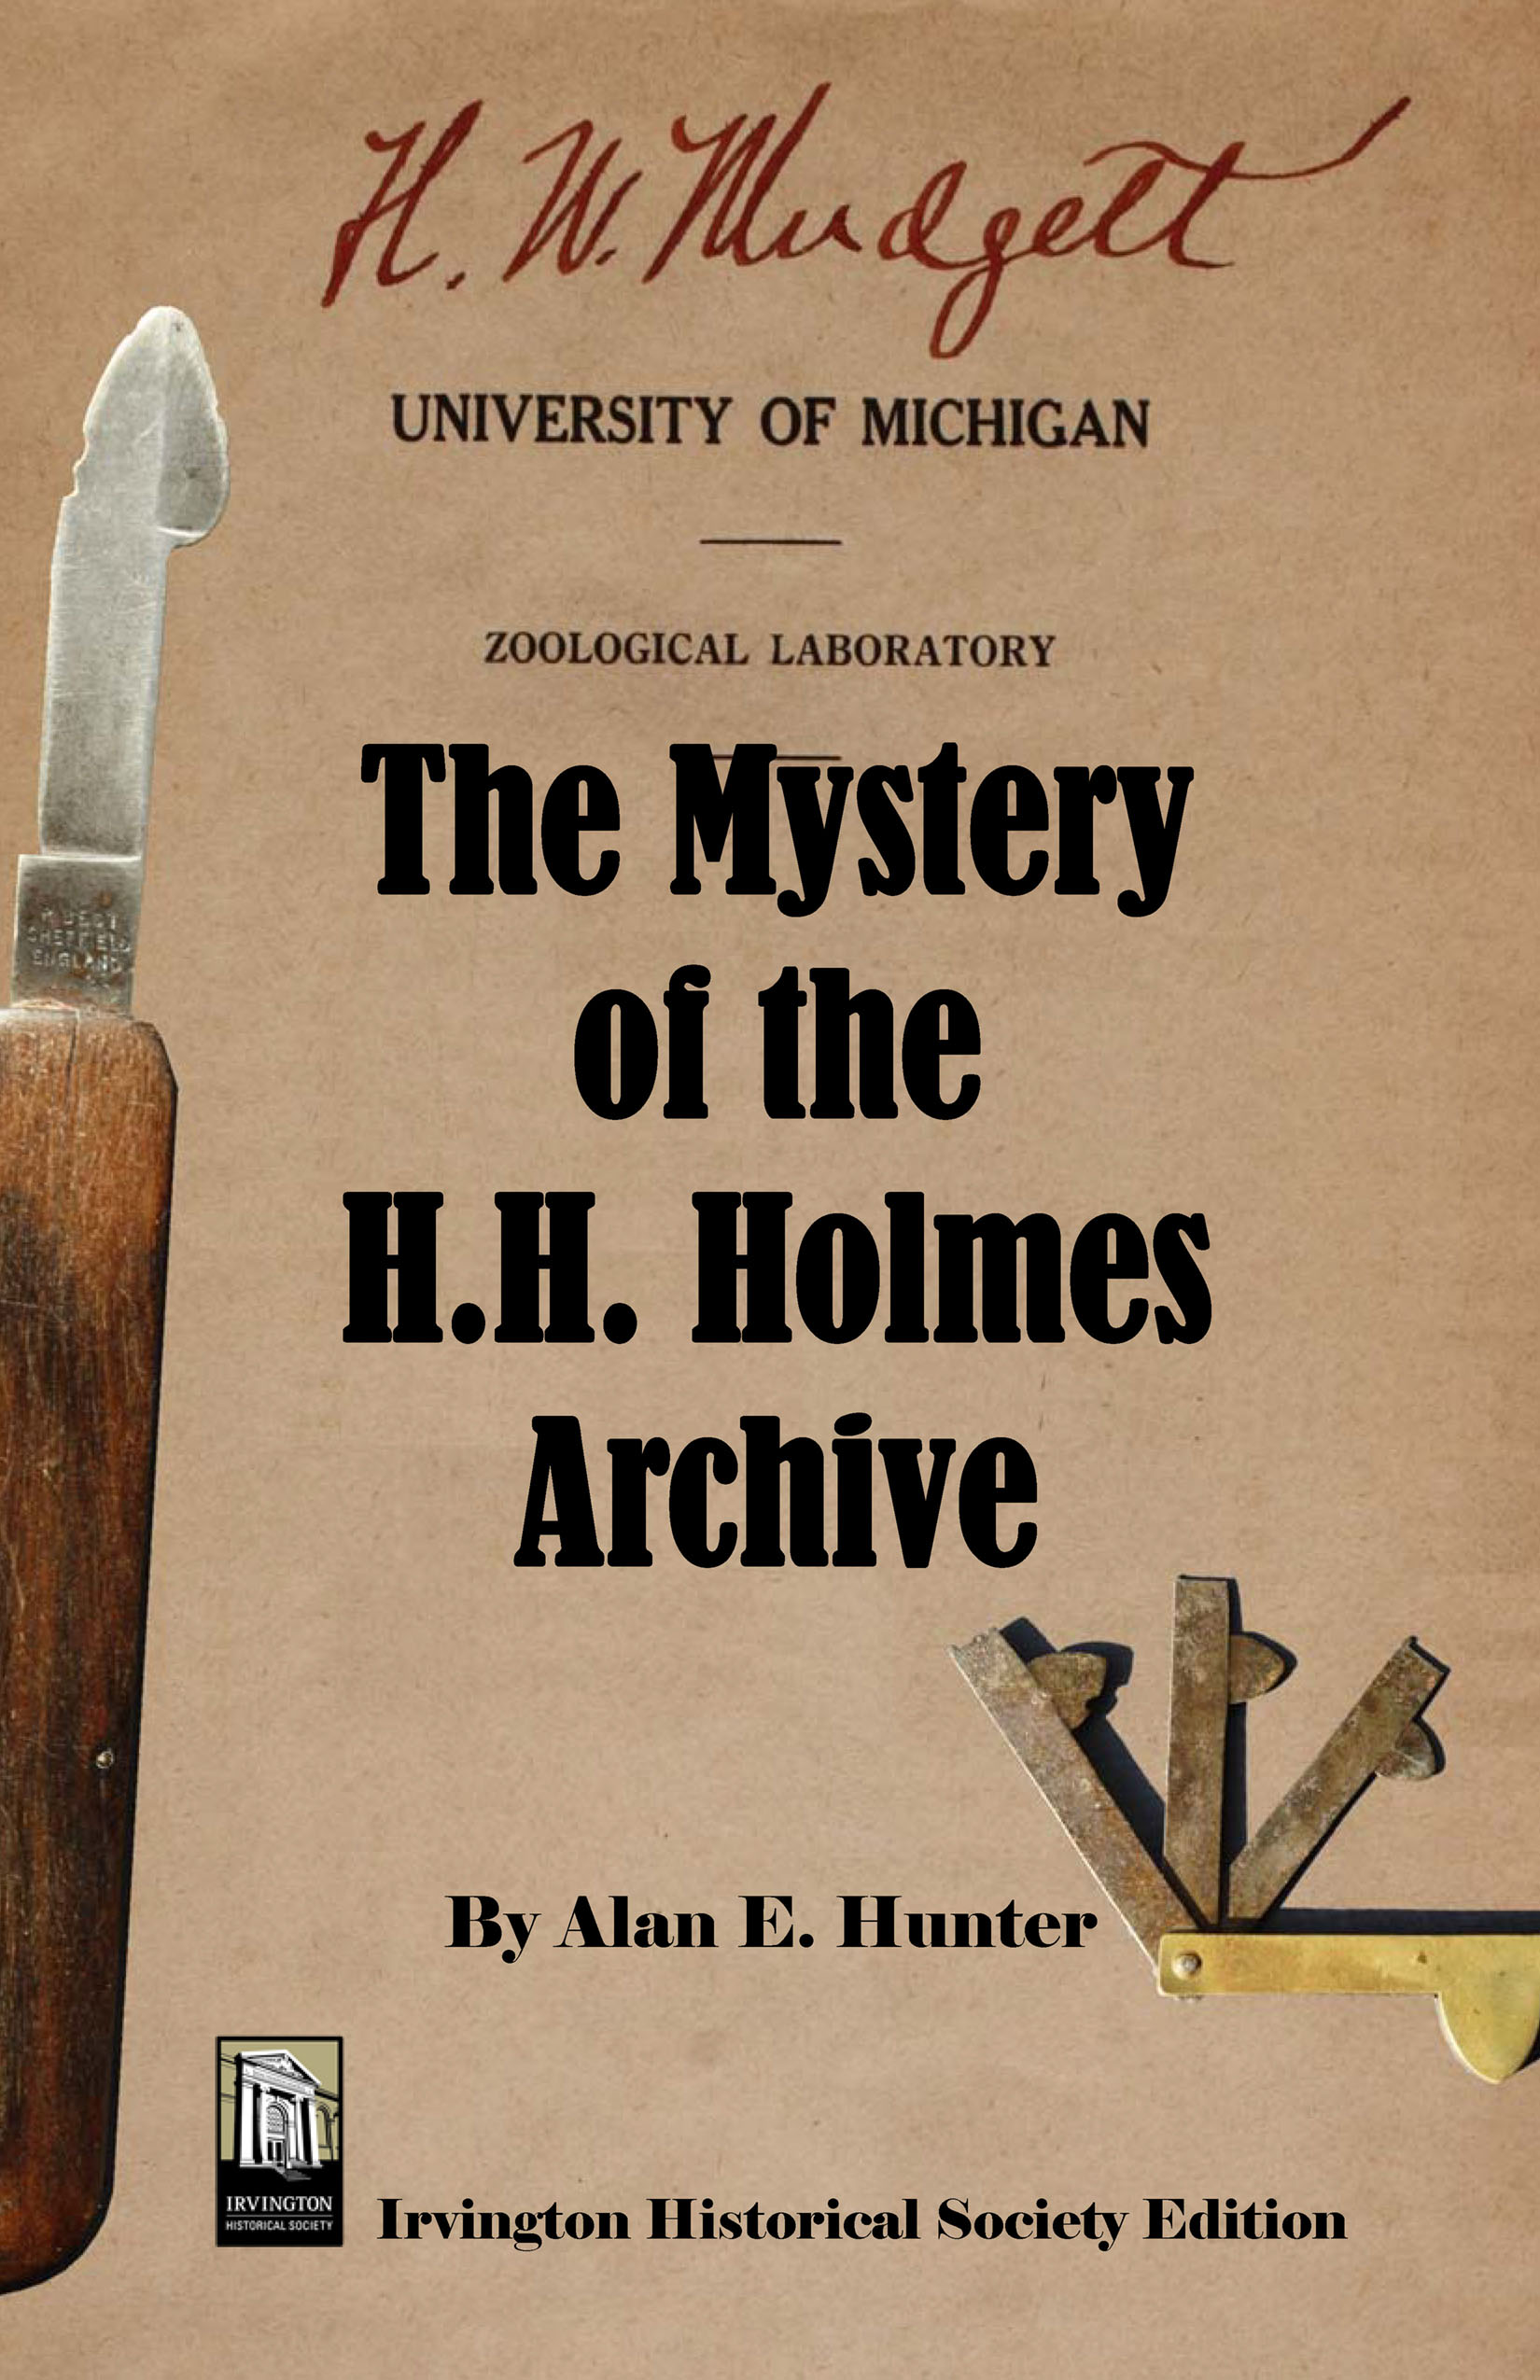 The Mystery of the H. H. Holmes Archives